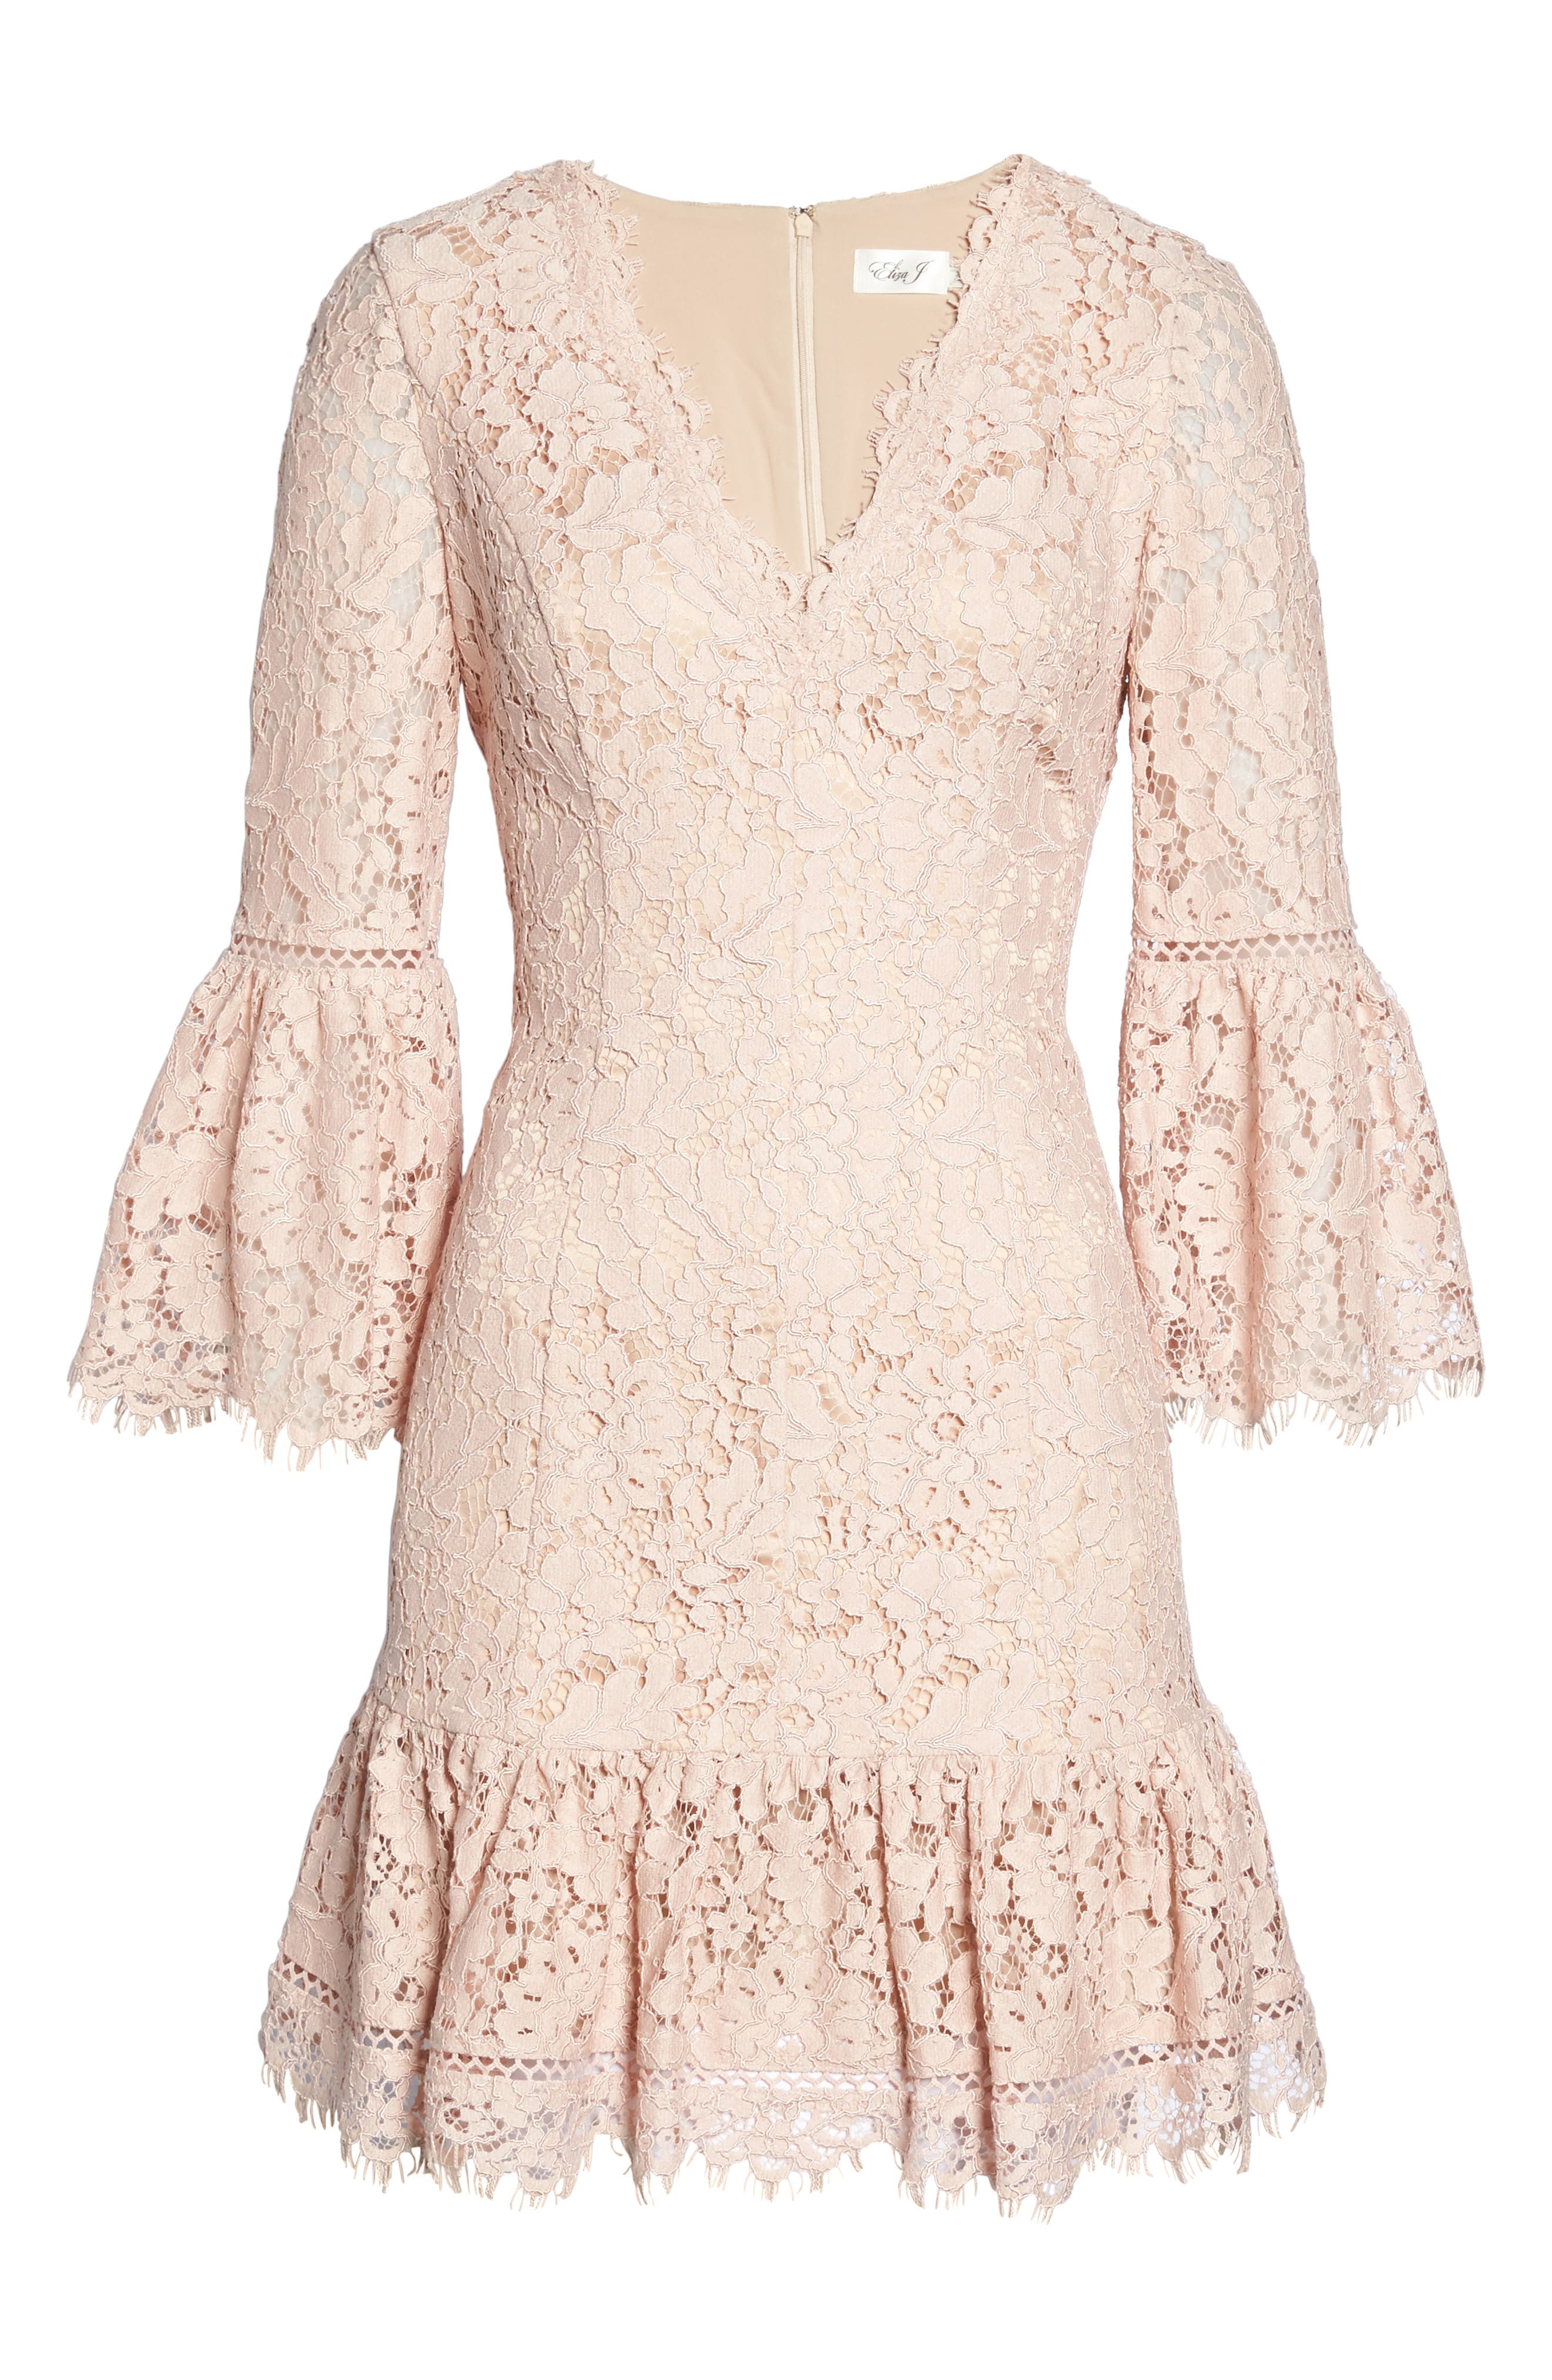 Bell Sleeve Lace Dress,                             Alternate thumbnail 5, color,                             Blush